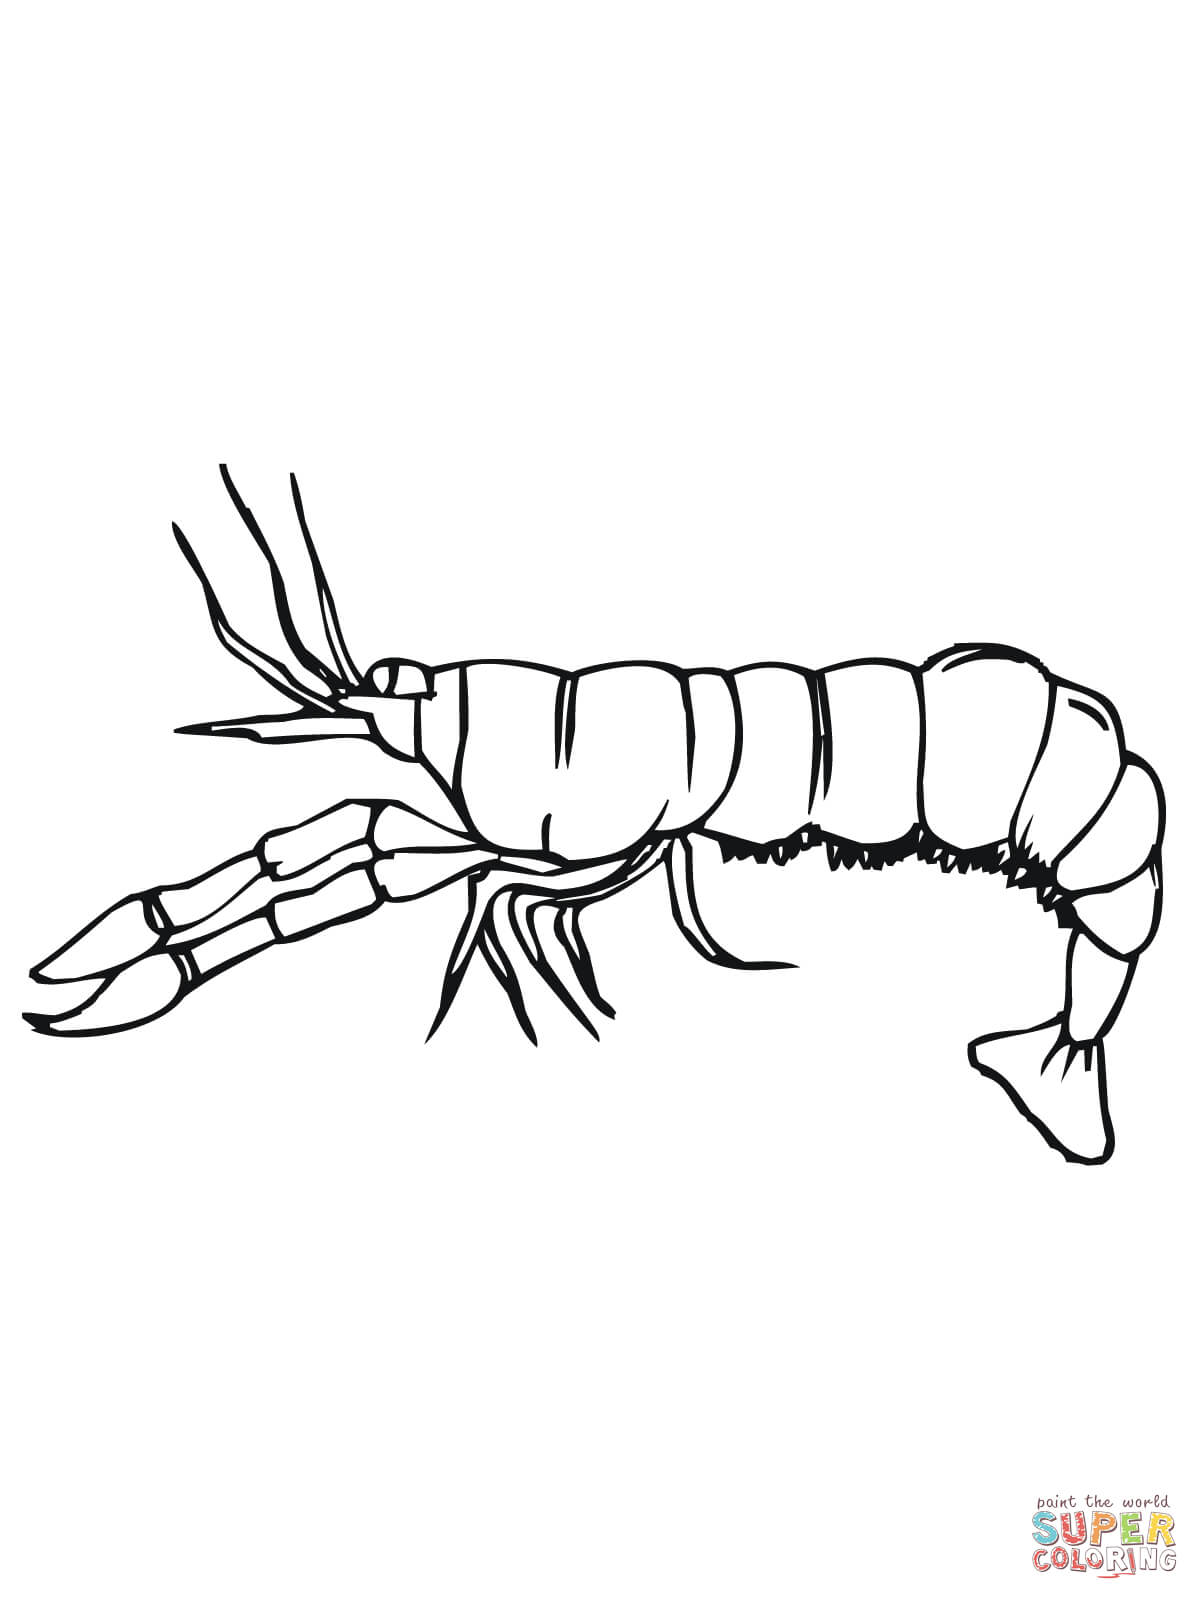 Crawfish Side View Coloring Page Free Printable Coloring Pages